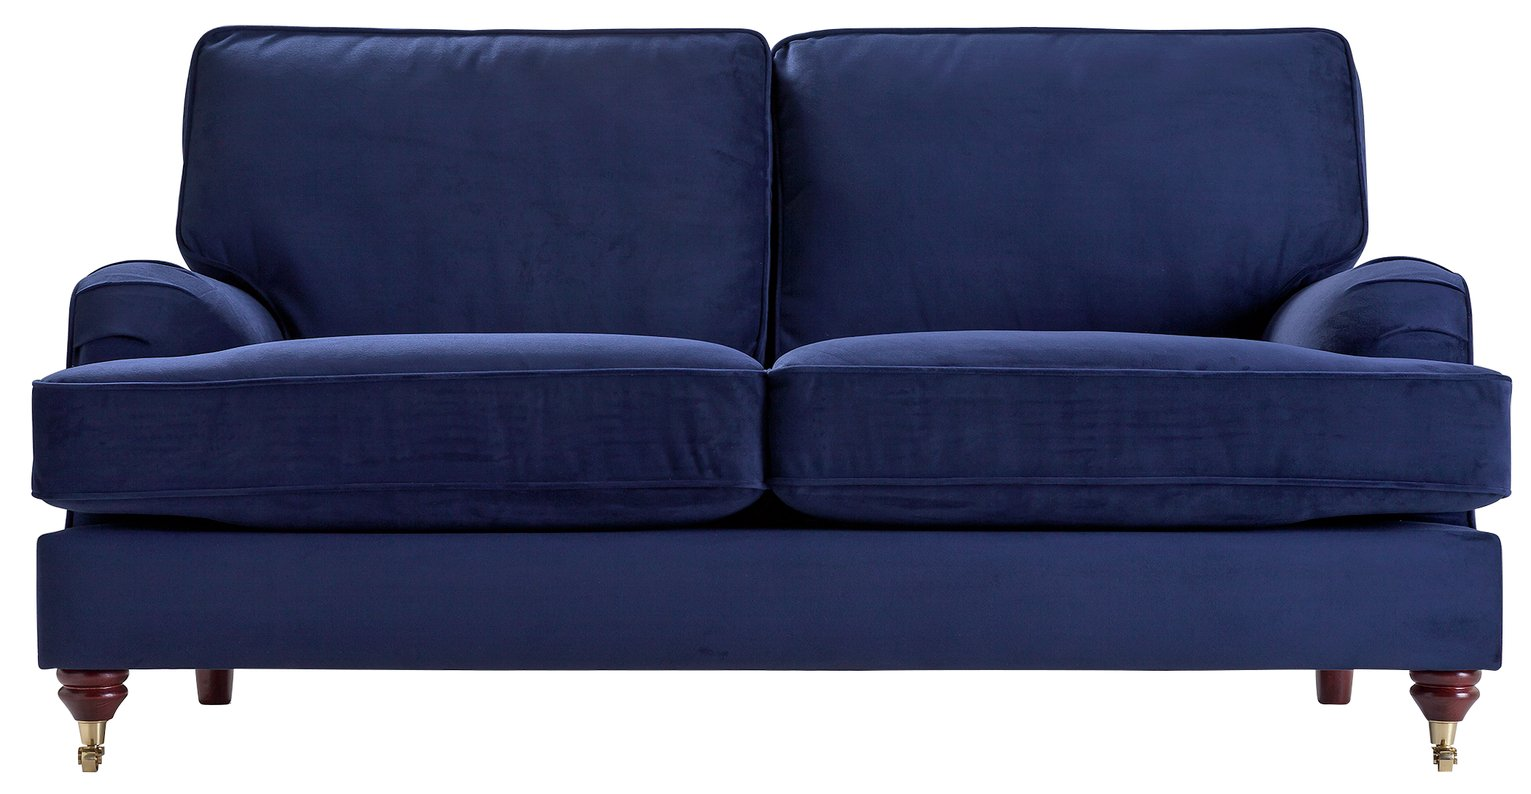 Image of Heart of House Abberton 3 Seater Sofa - Navy Velvet